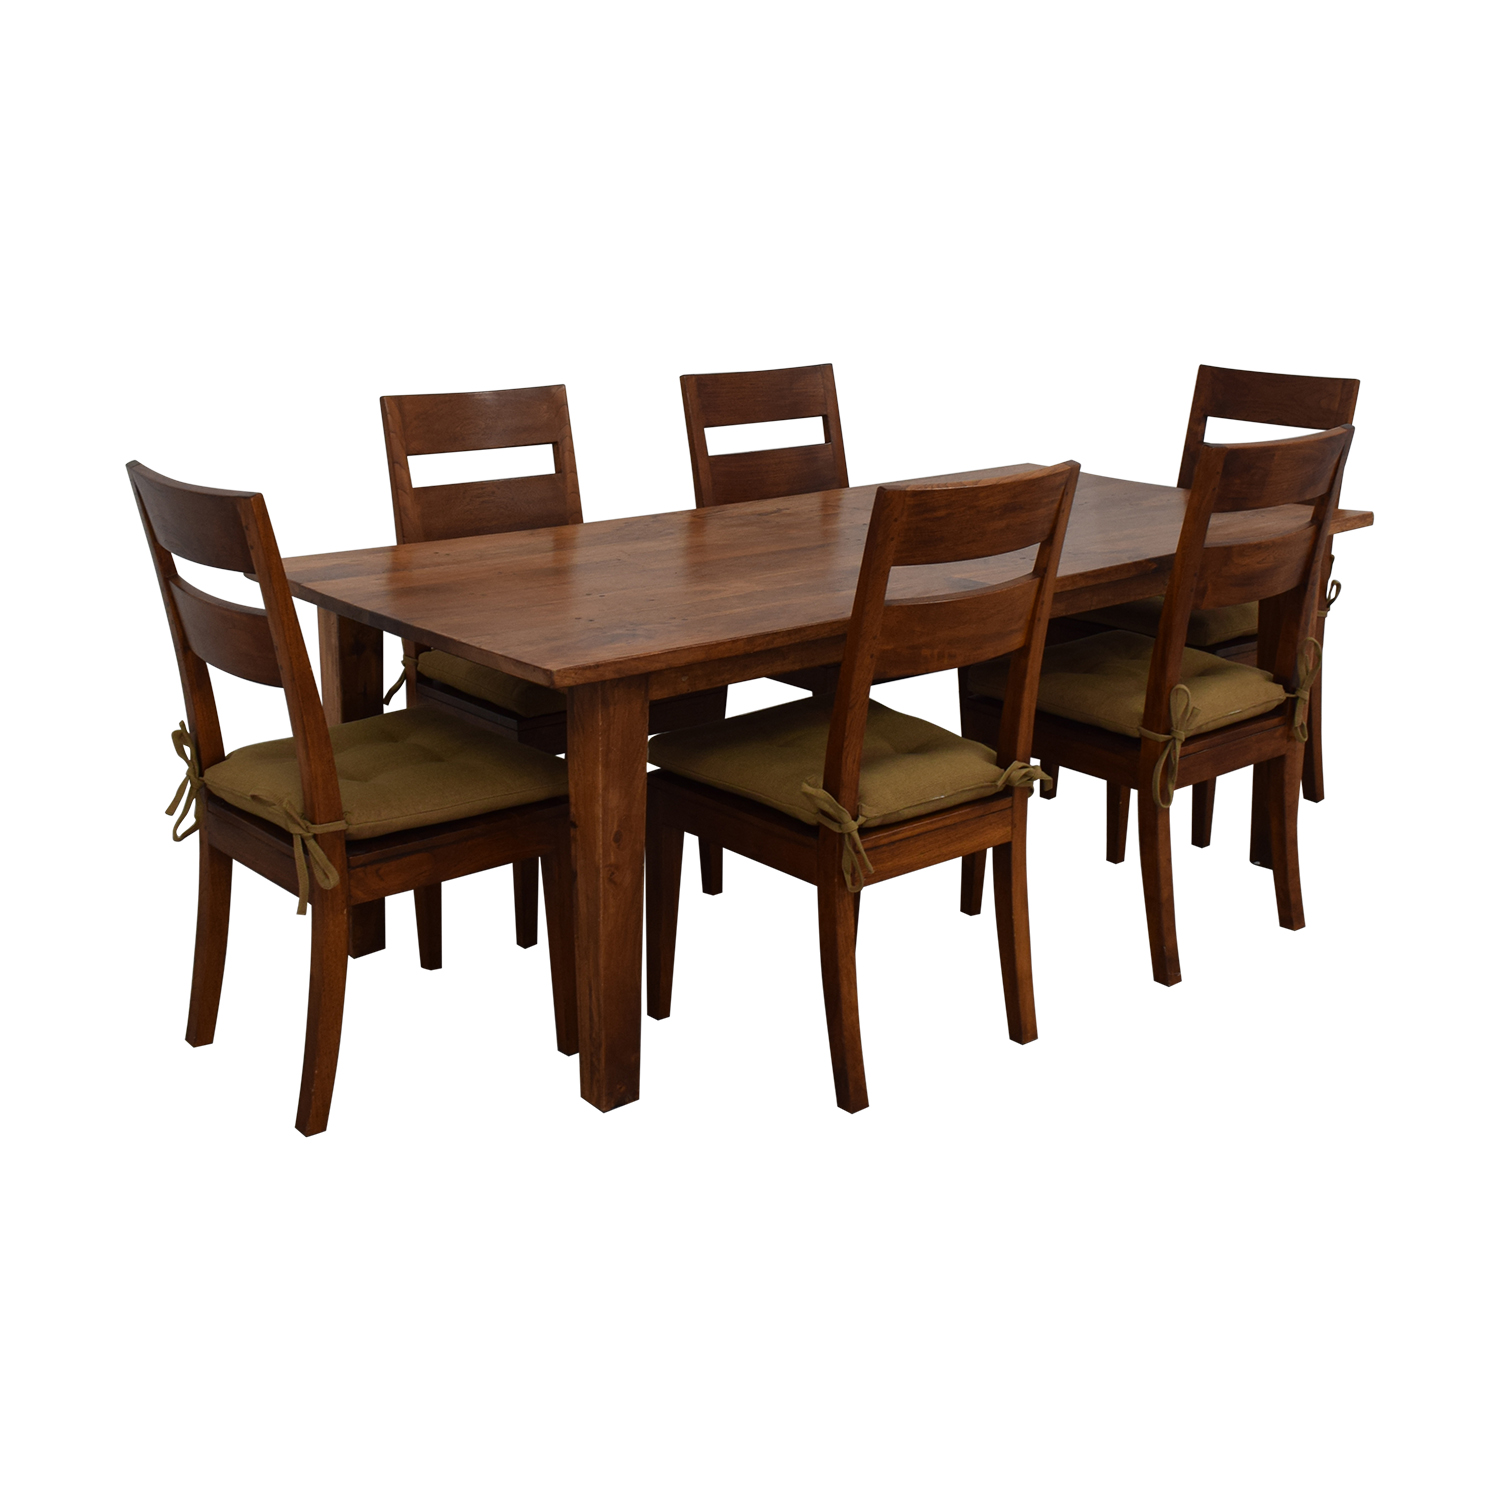 Crate And Barrel Dining Chairs: Crate & Barrel Crate & Barrel Basque Dining